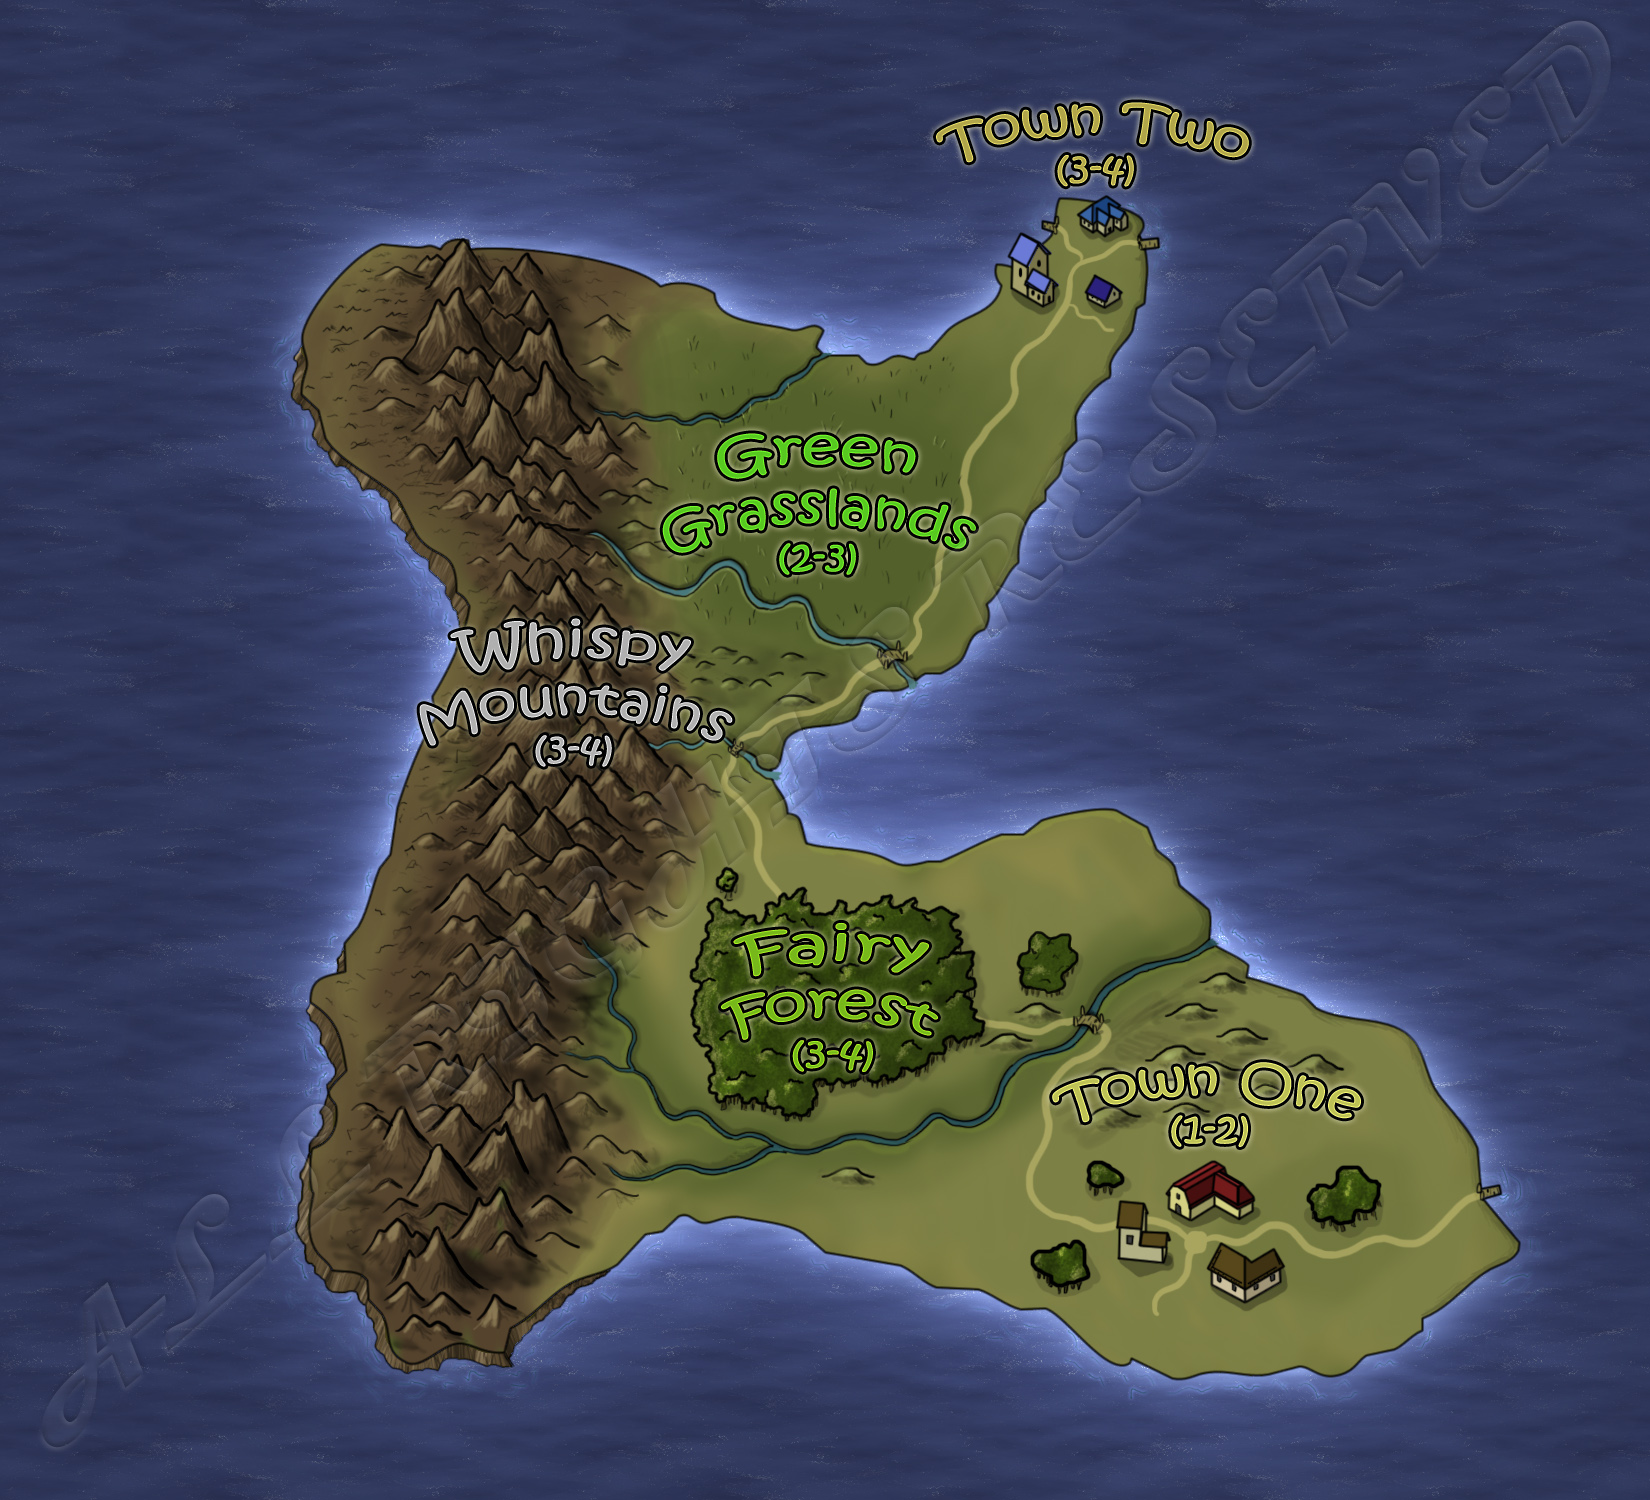 Slightly cartoony map commission